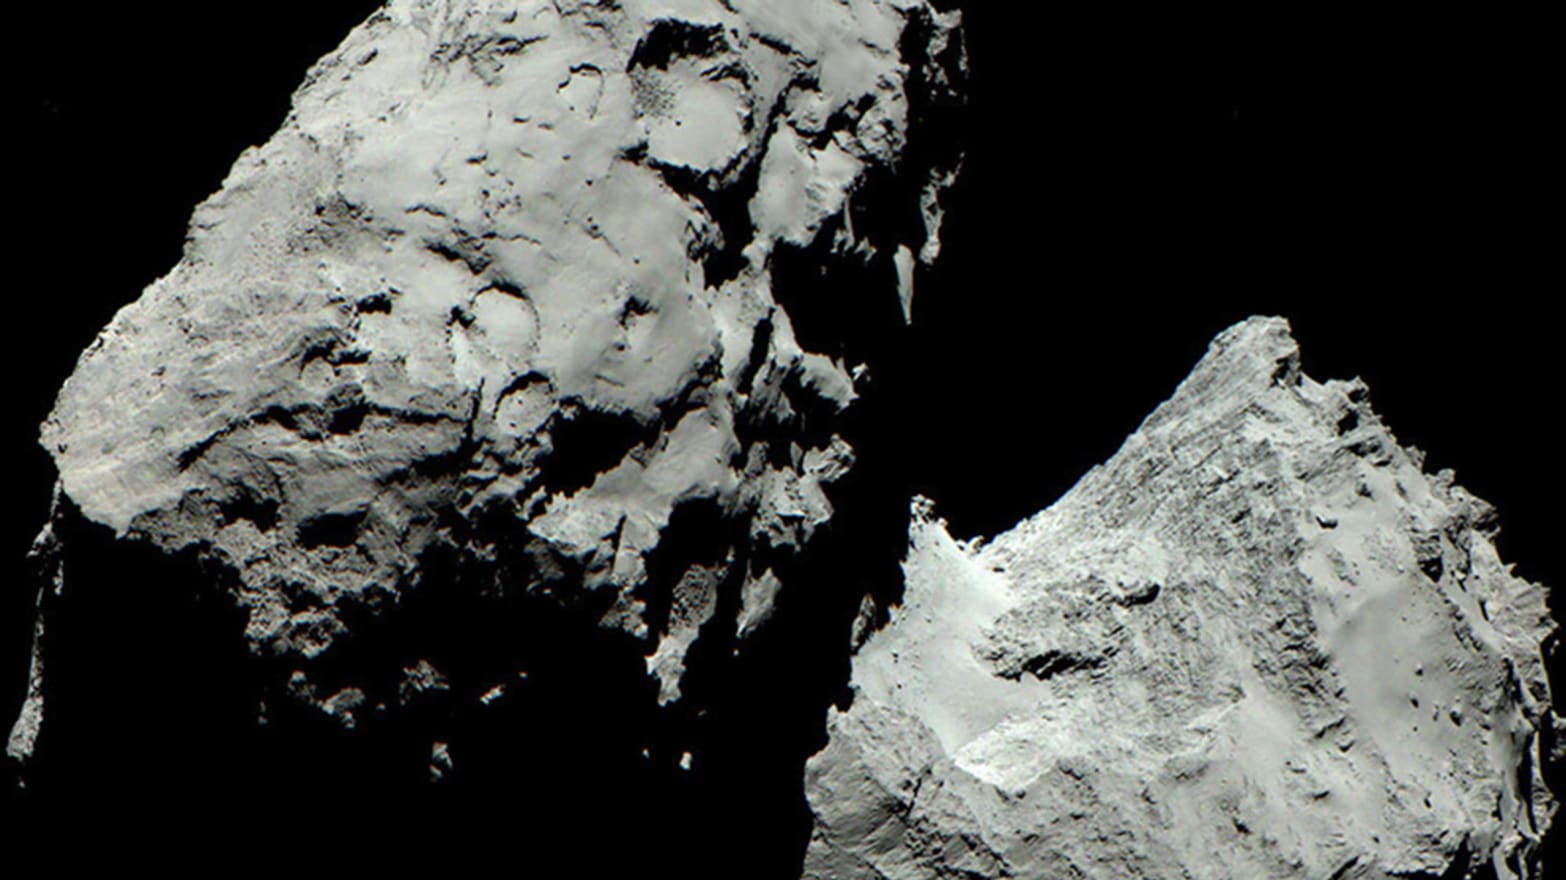 Are Comets the Origin of Earth's Oceans?